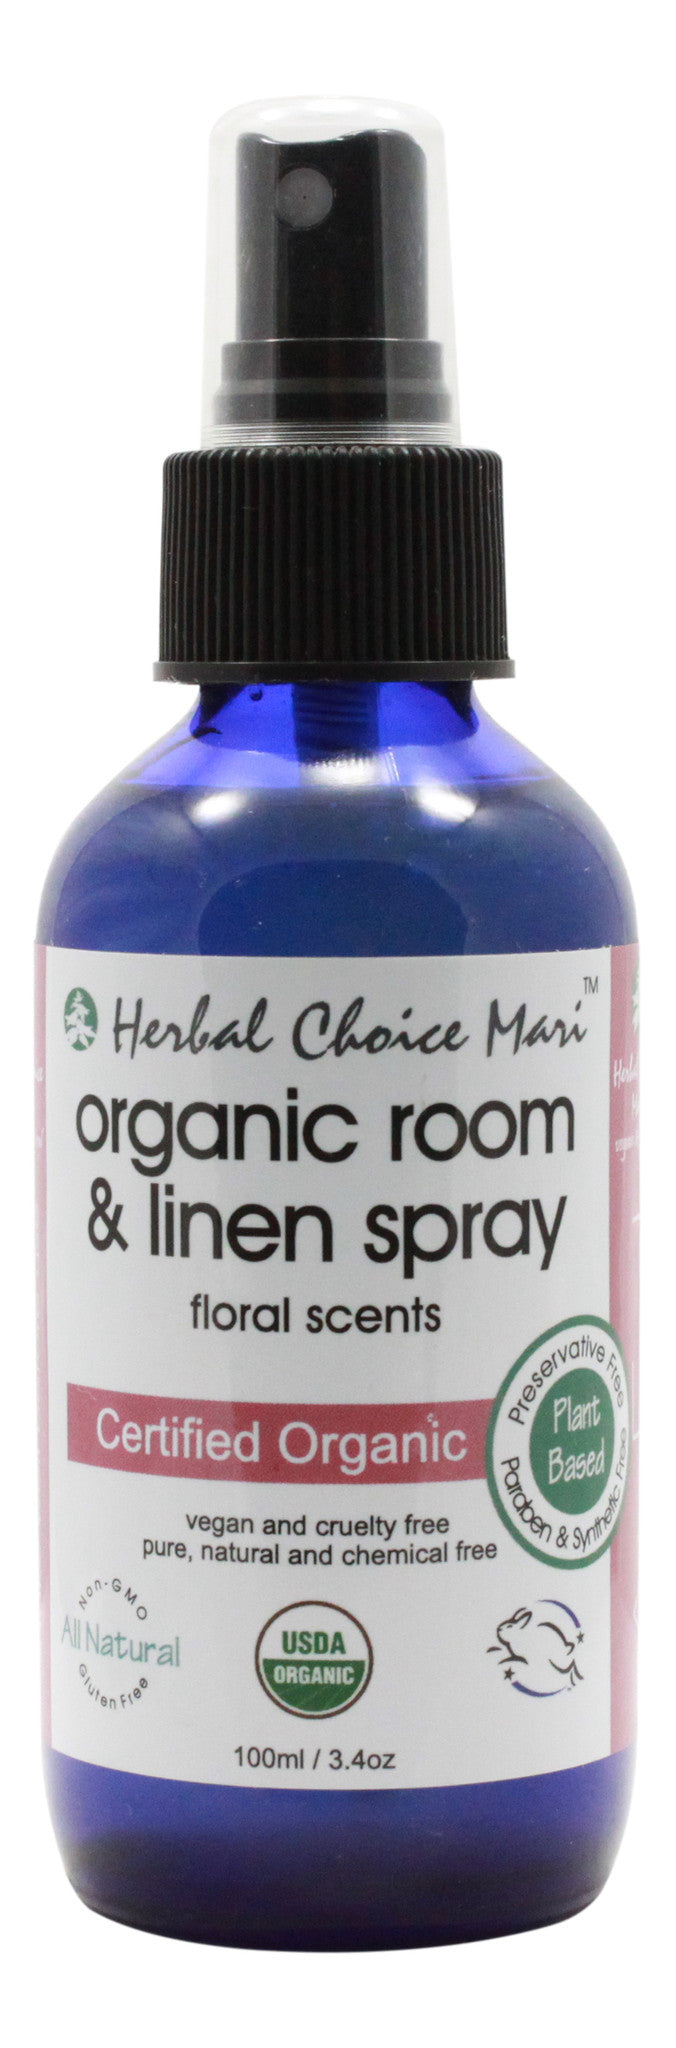 Organic Room & Linen Spray - Floral Scents - 3.4 oz Spray Bottle - Front